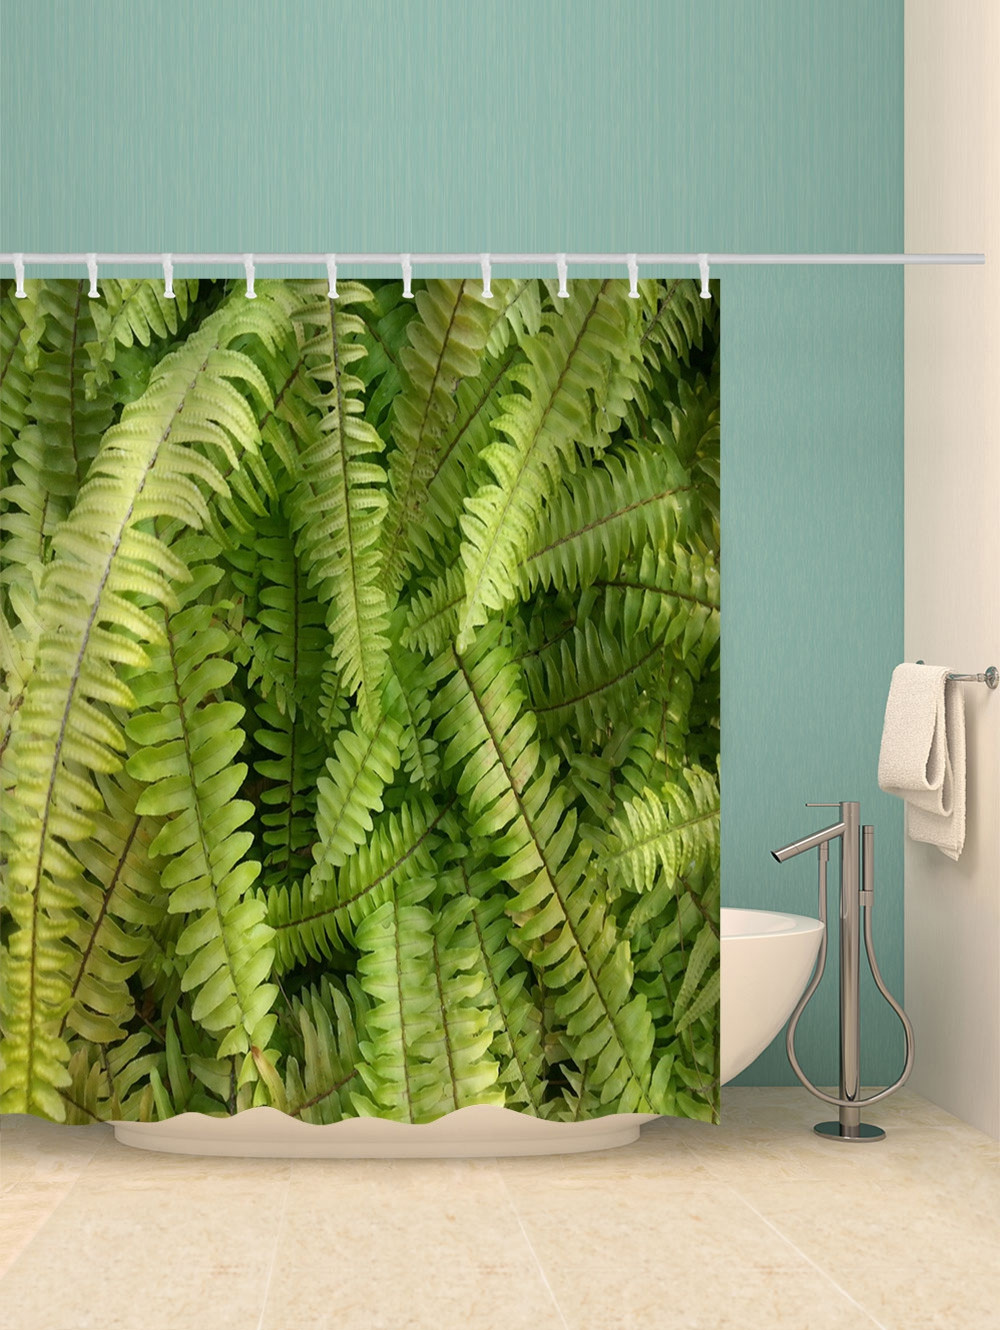 Fern Leaf Print Waterproof Bathroom Shower Curtain